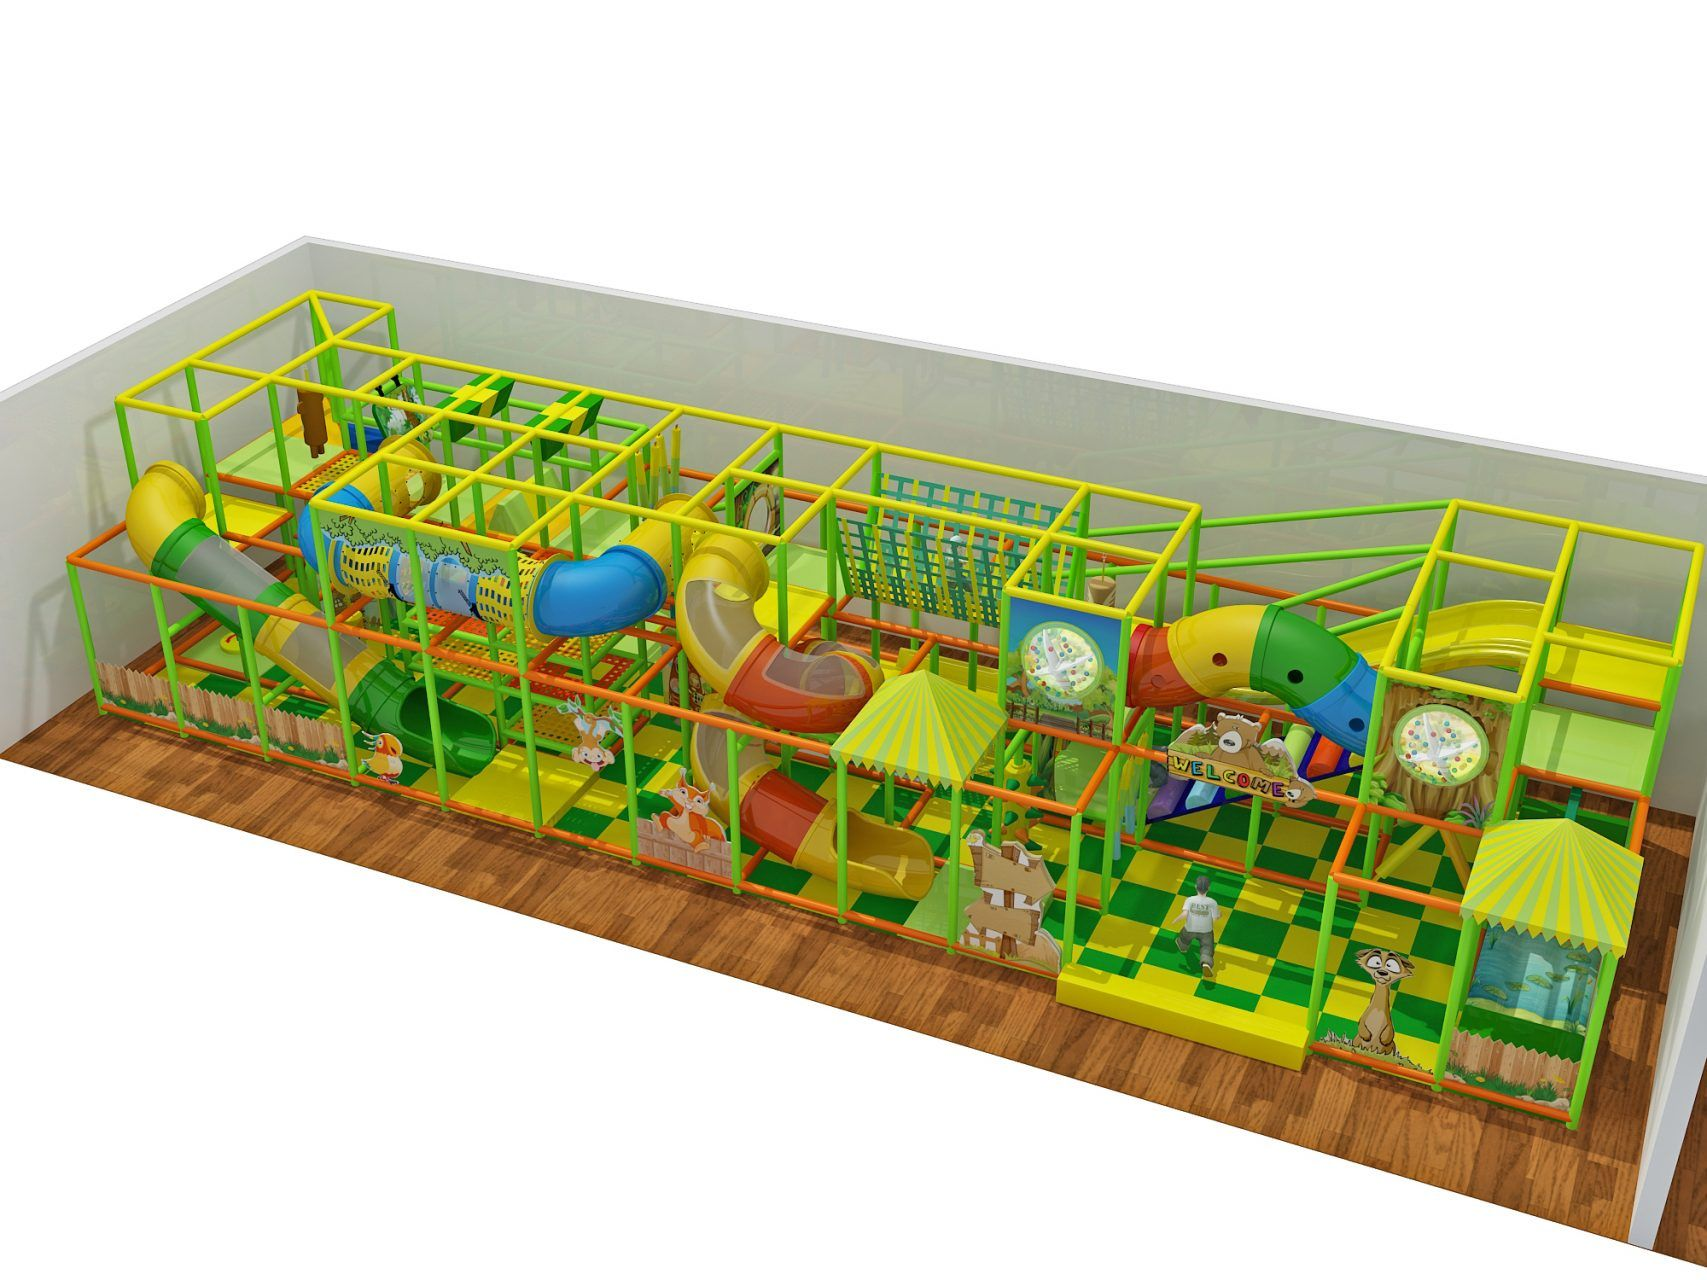 2 story Treehouse Theme Indoor Playground Indoor Playgrounds